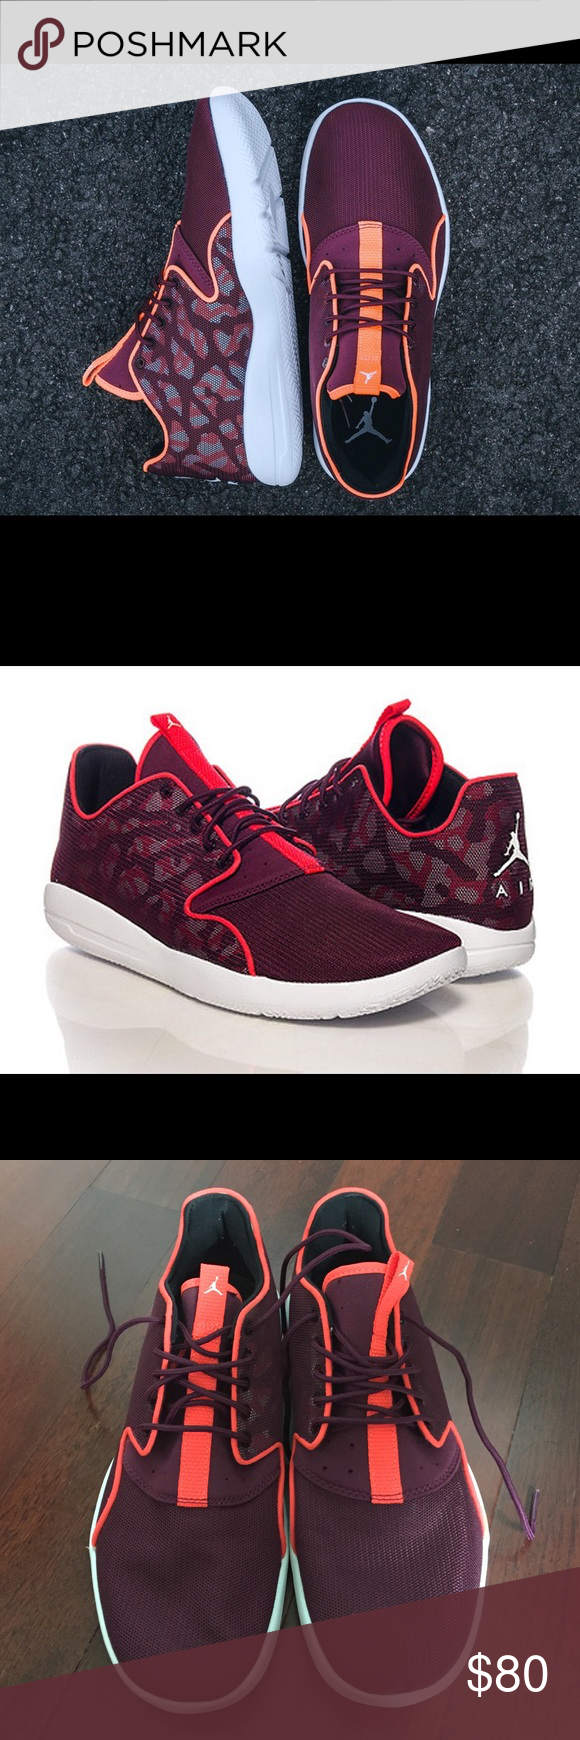 super popular 5f29b b4d2b Nike Air Jordan Eclipse Nike Air Jordan Eclipse shoes in Elephant Print Pack  color. Lightly worn... In almost new condition. Men s size 8.5, women s  size 10 ...